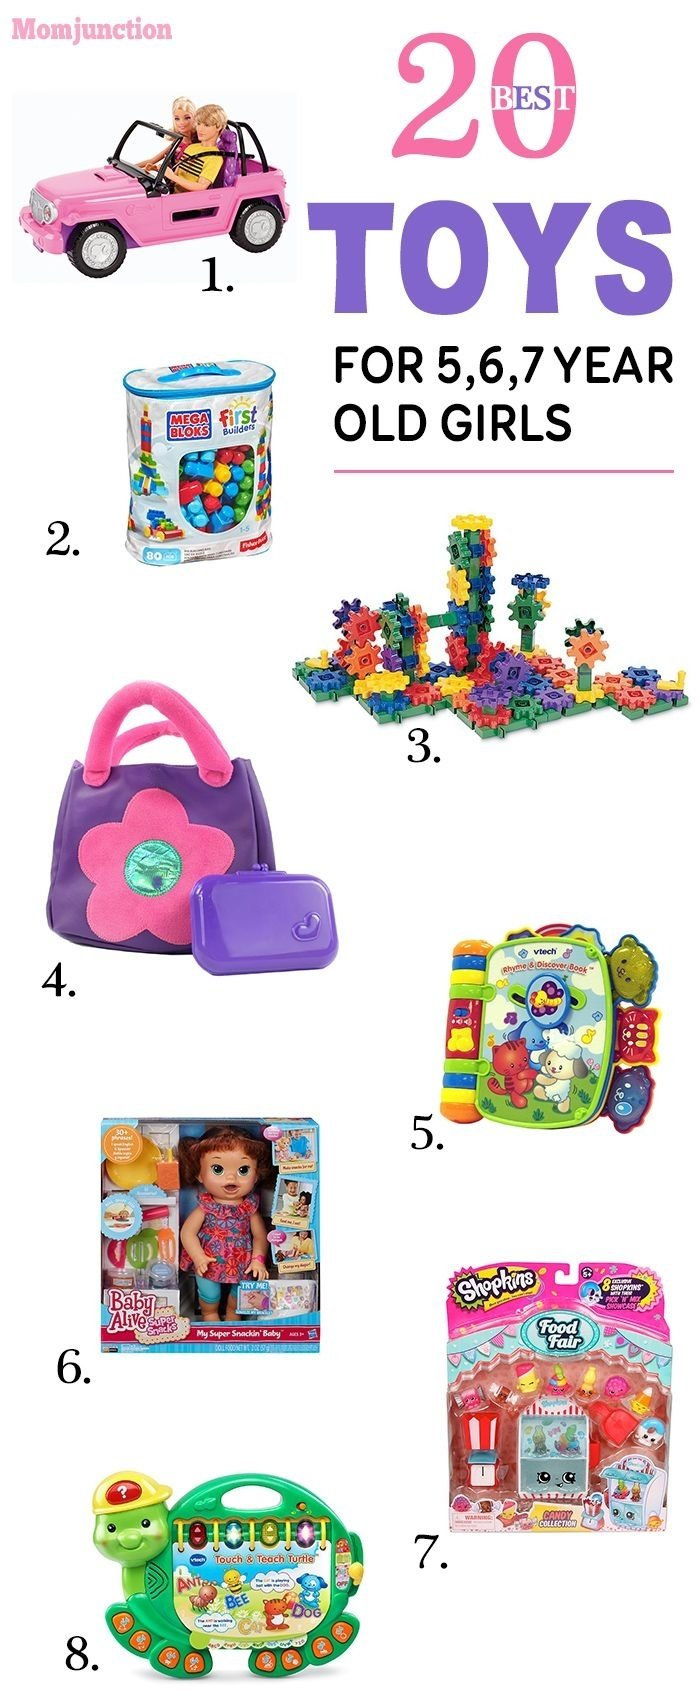 10 famous gift ideas for 5 year old birthday girl 15 best toys for 56 and